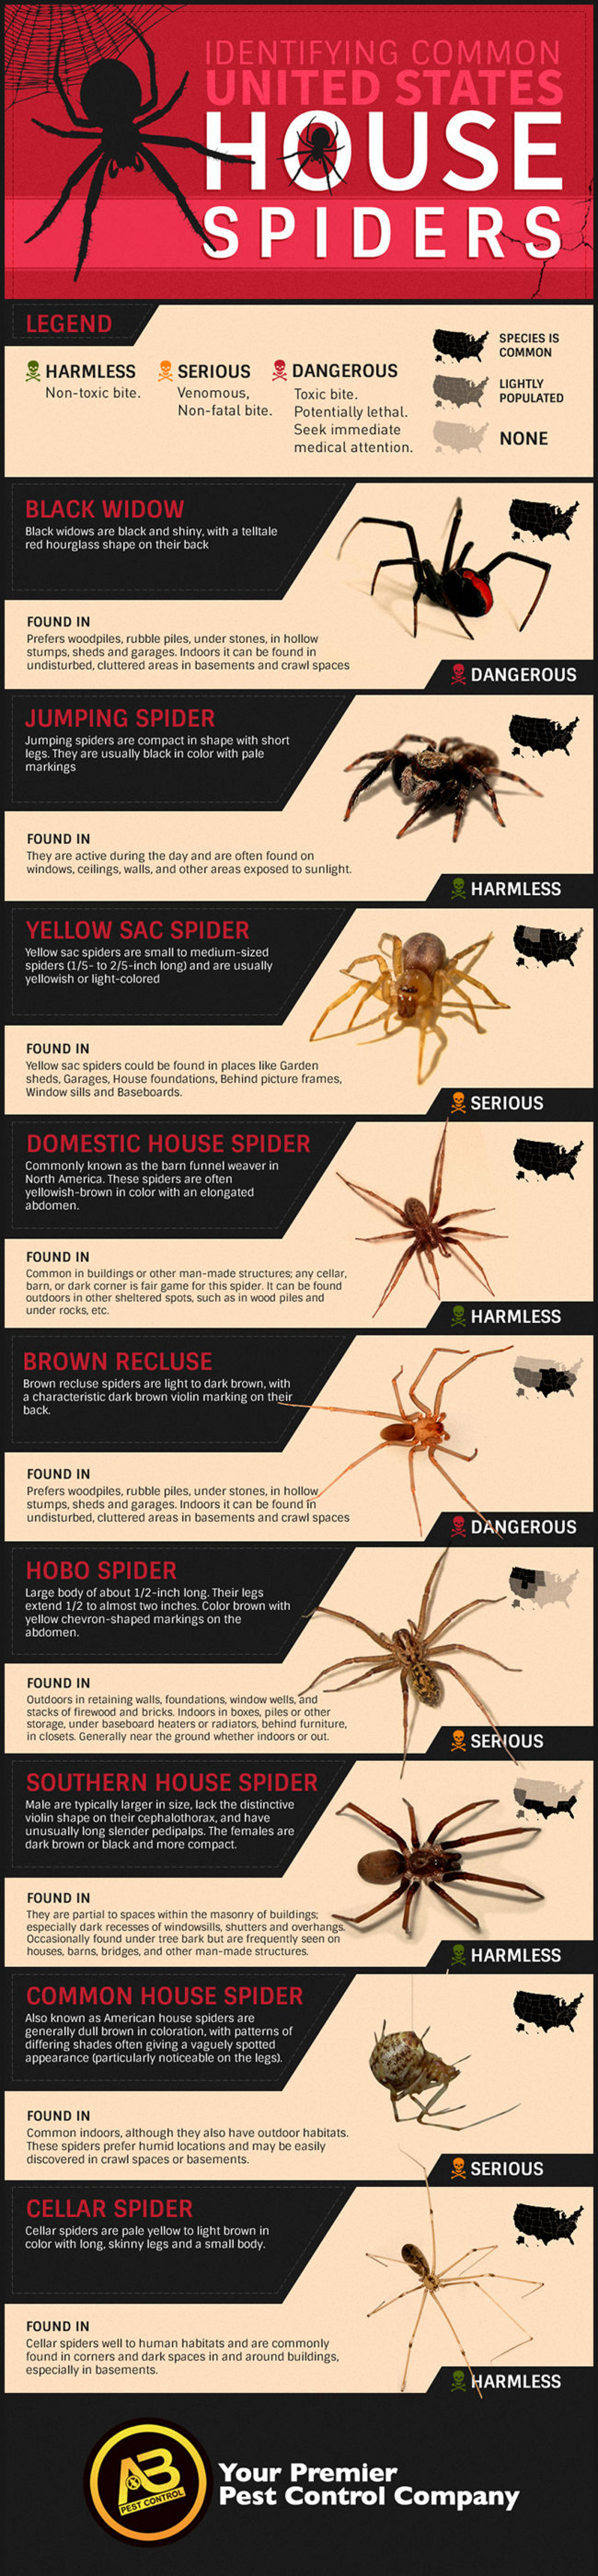 Identifying Common U.S. House Spiders | Visual.ly